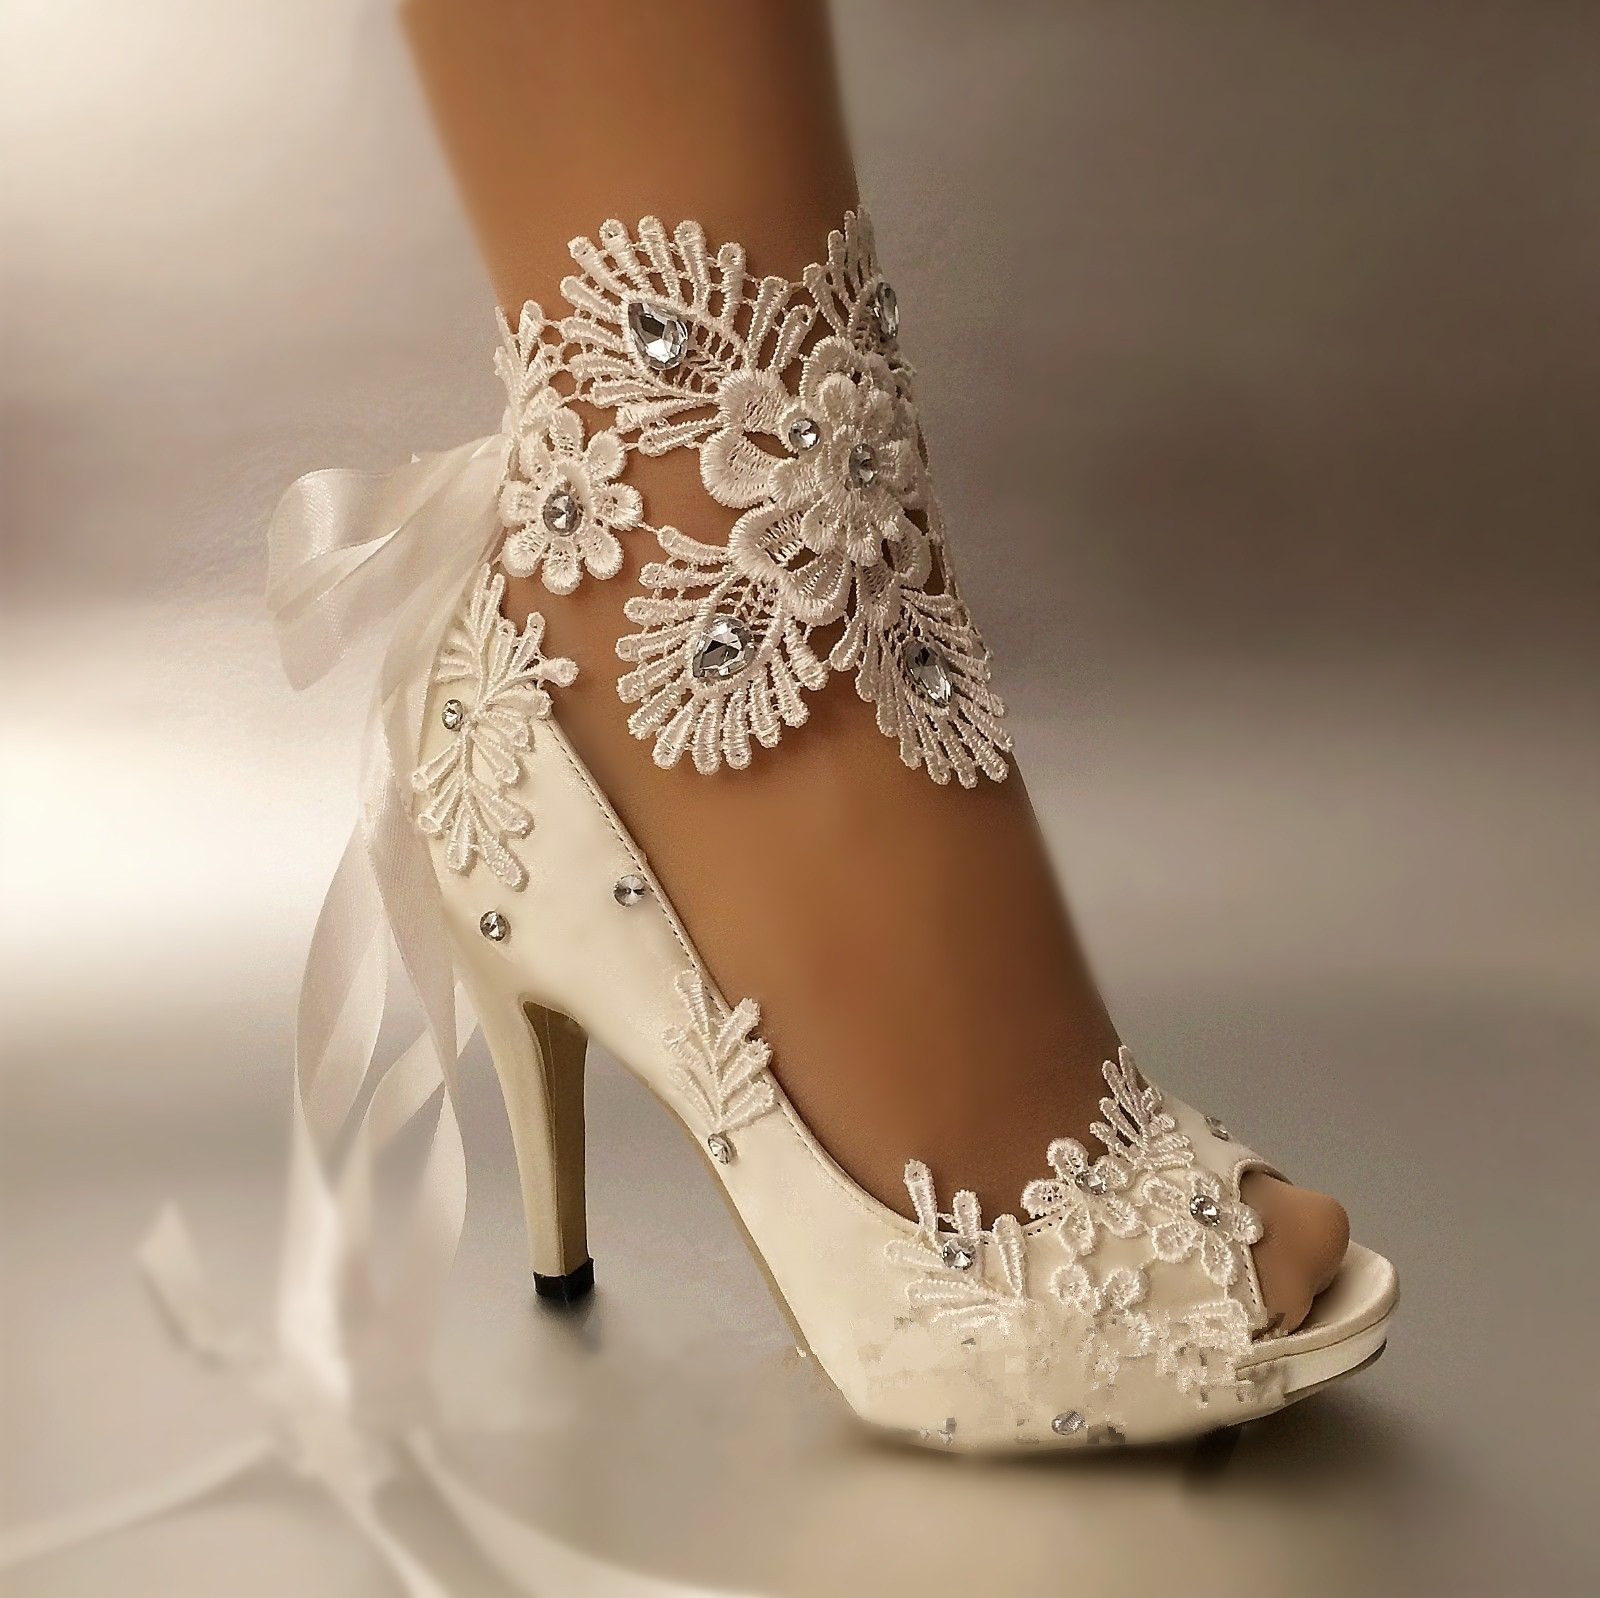 Bridal Shoes High Heels: Aliexpress.com : Buy Dress Shoes Women Pumps Open Toe Lace